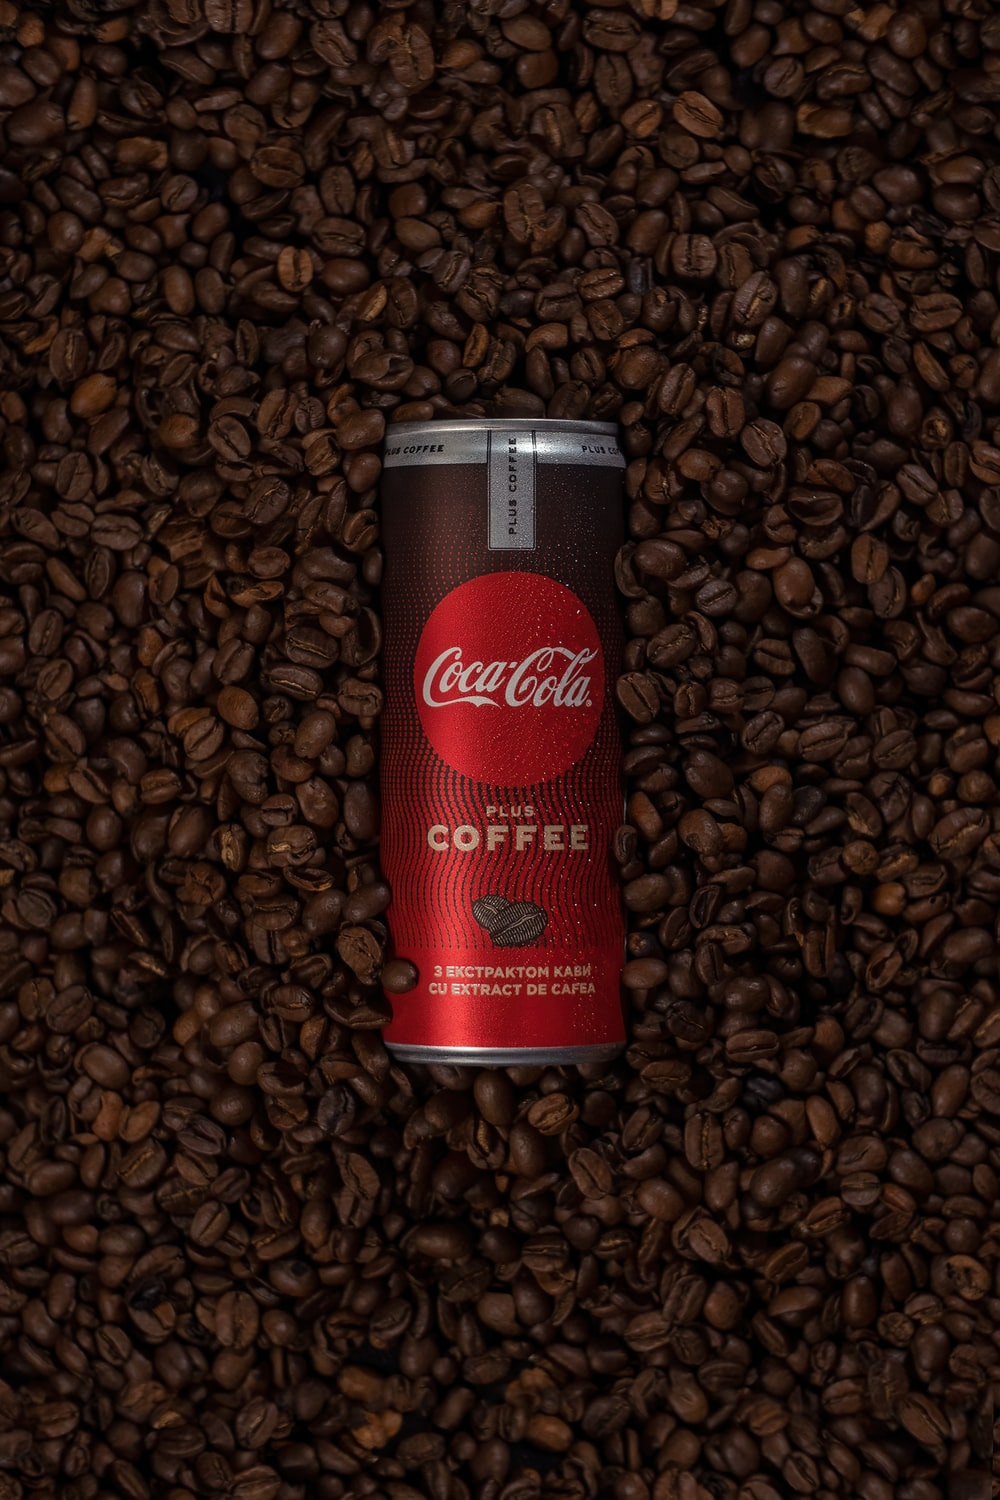 red coca cola can on brown coffee beans